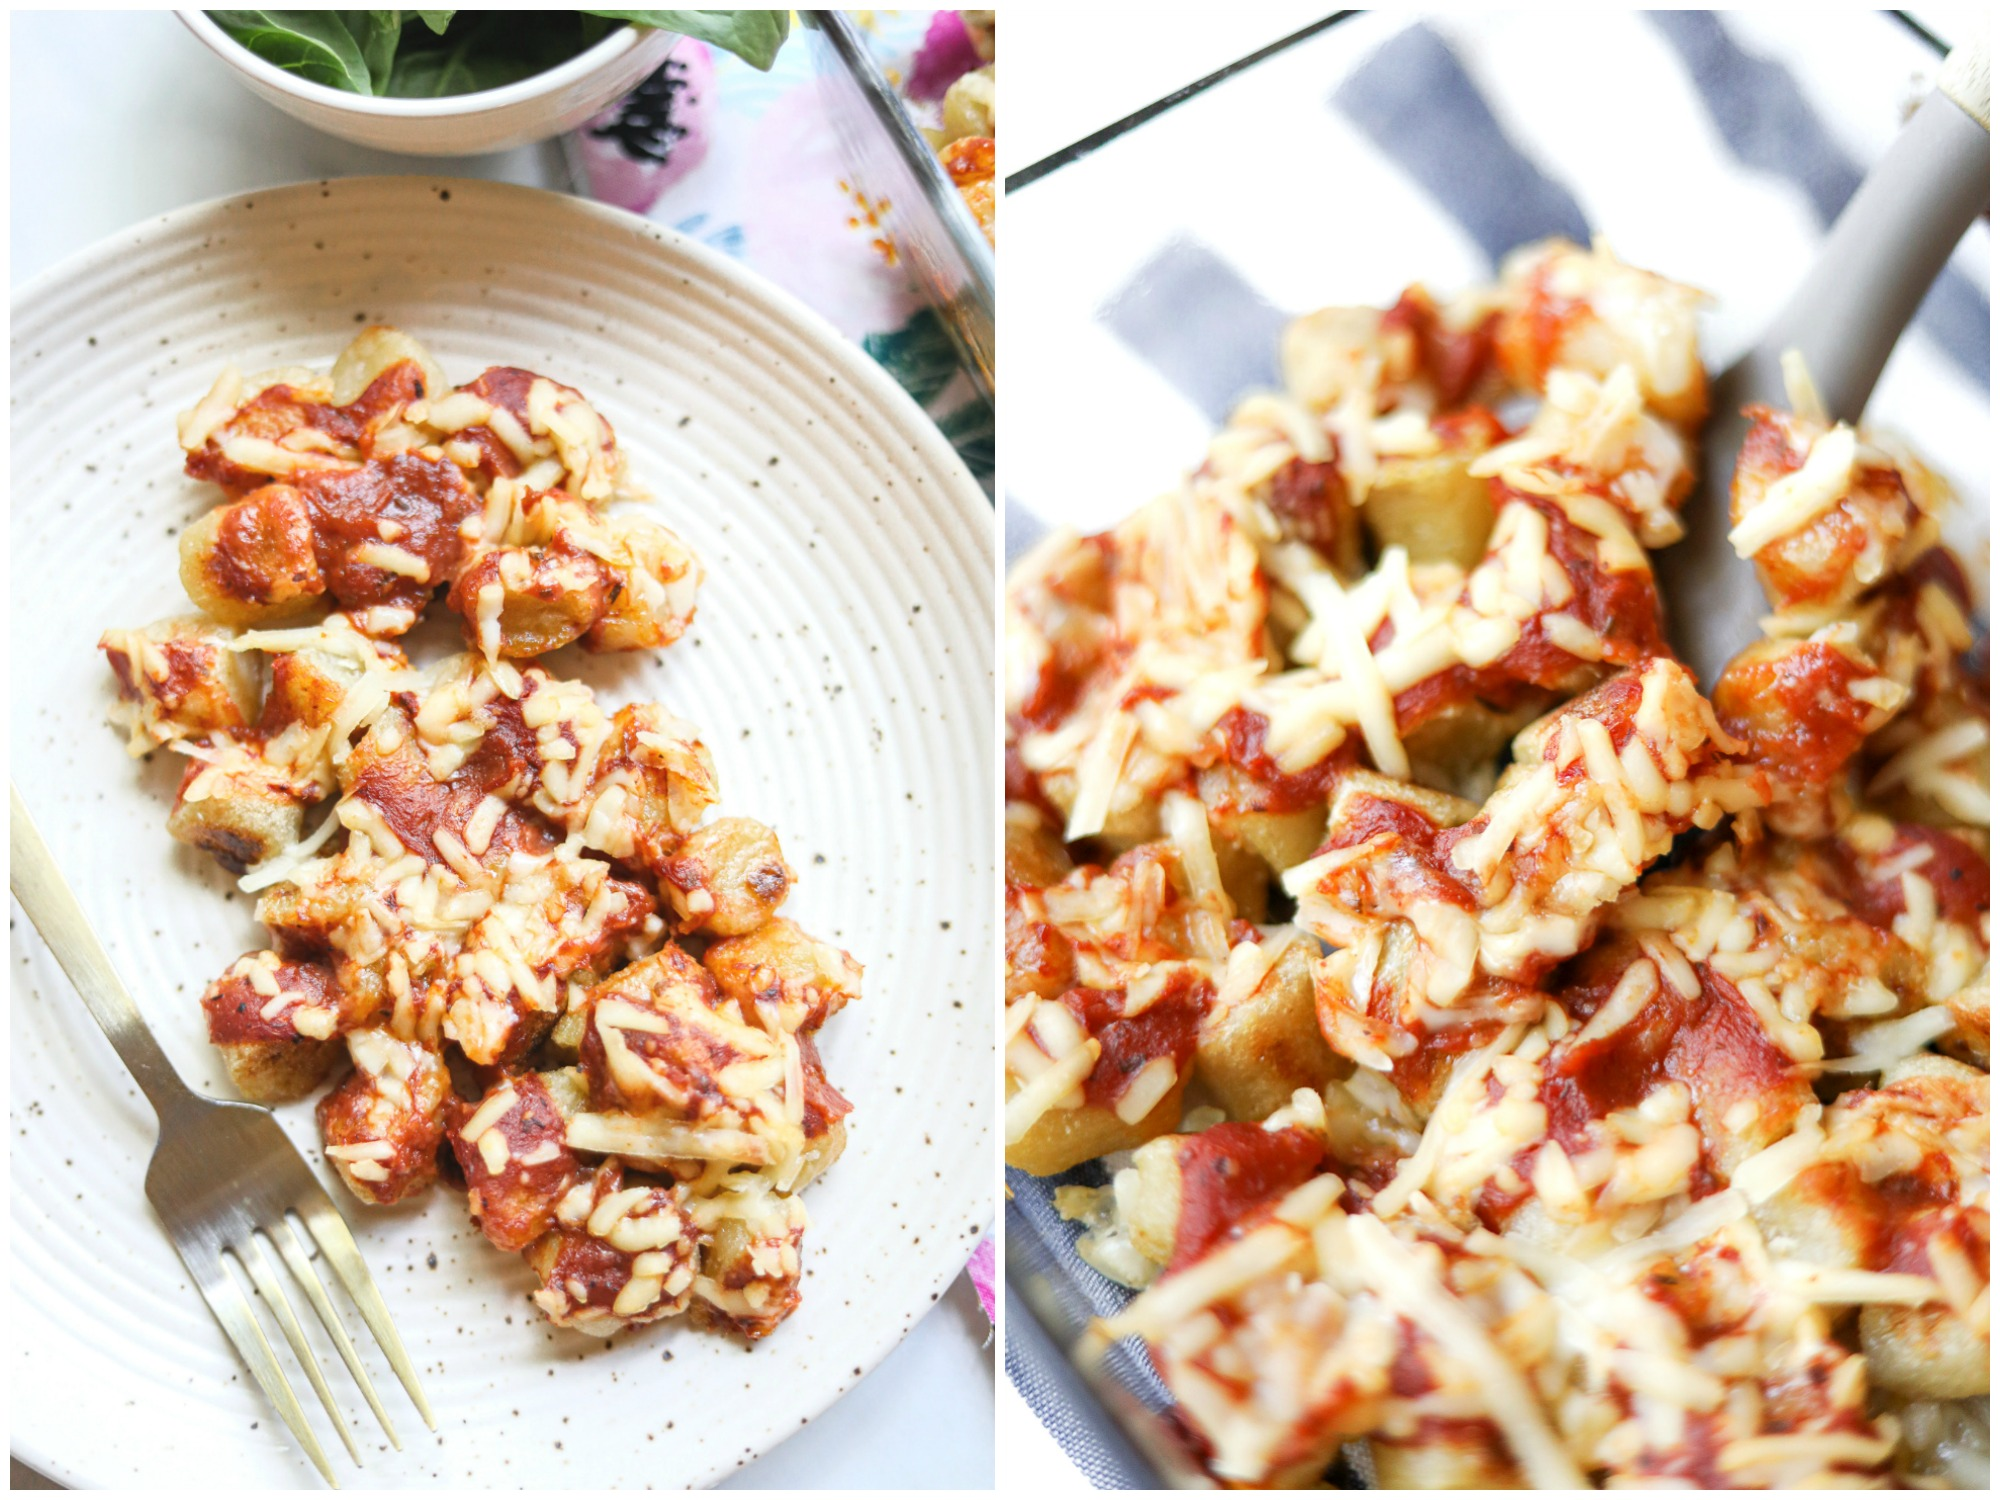 gluten-free, dairy free, healthy, lifestyle, vegan cheese, vegetarian, pasta sauce, healthy low calorie, low carb, vegan cheese, pasta, baked, easy dinner night, healthy food, plant based,